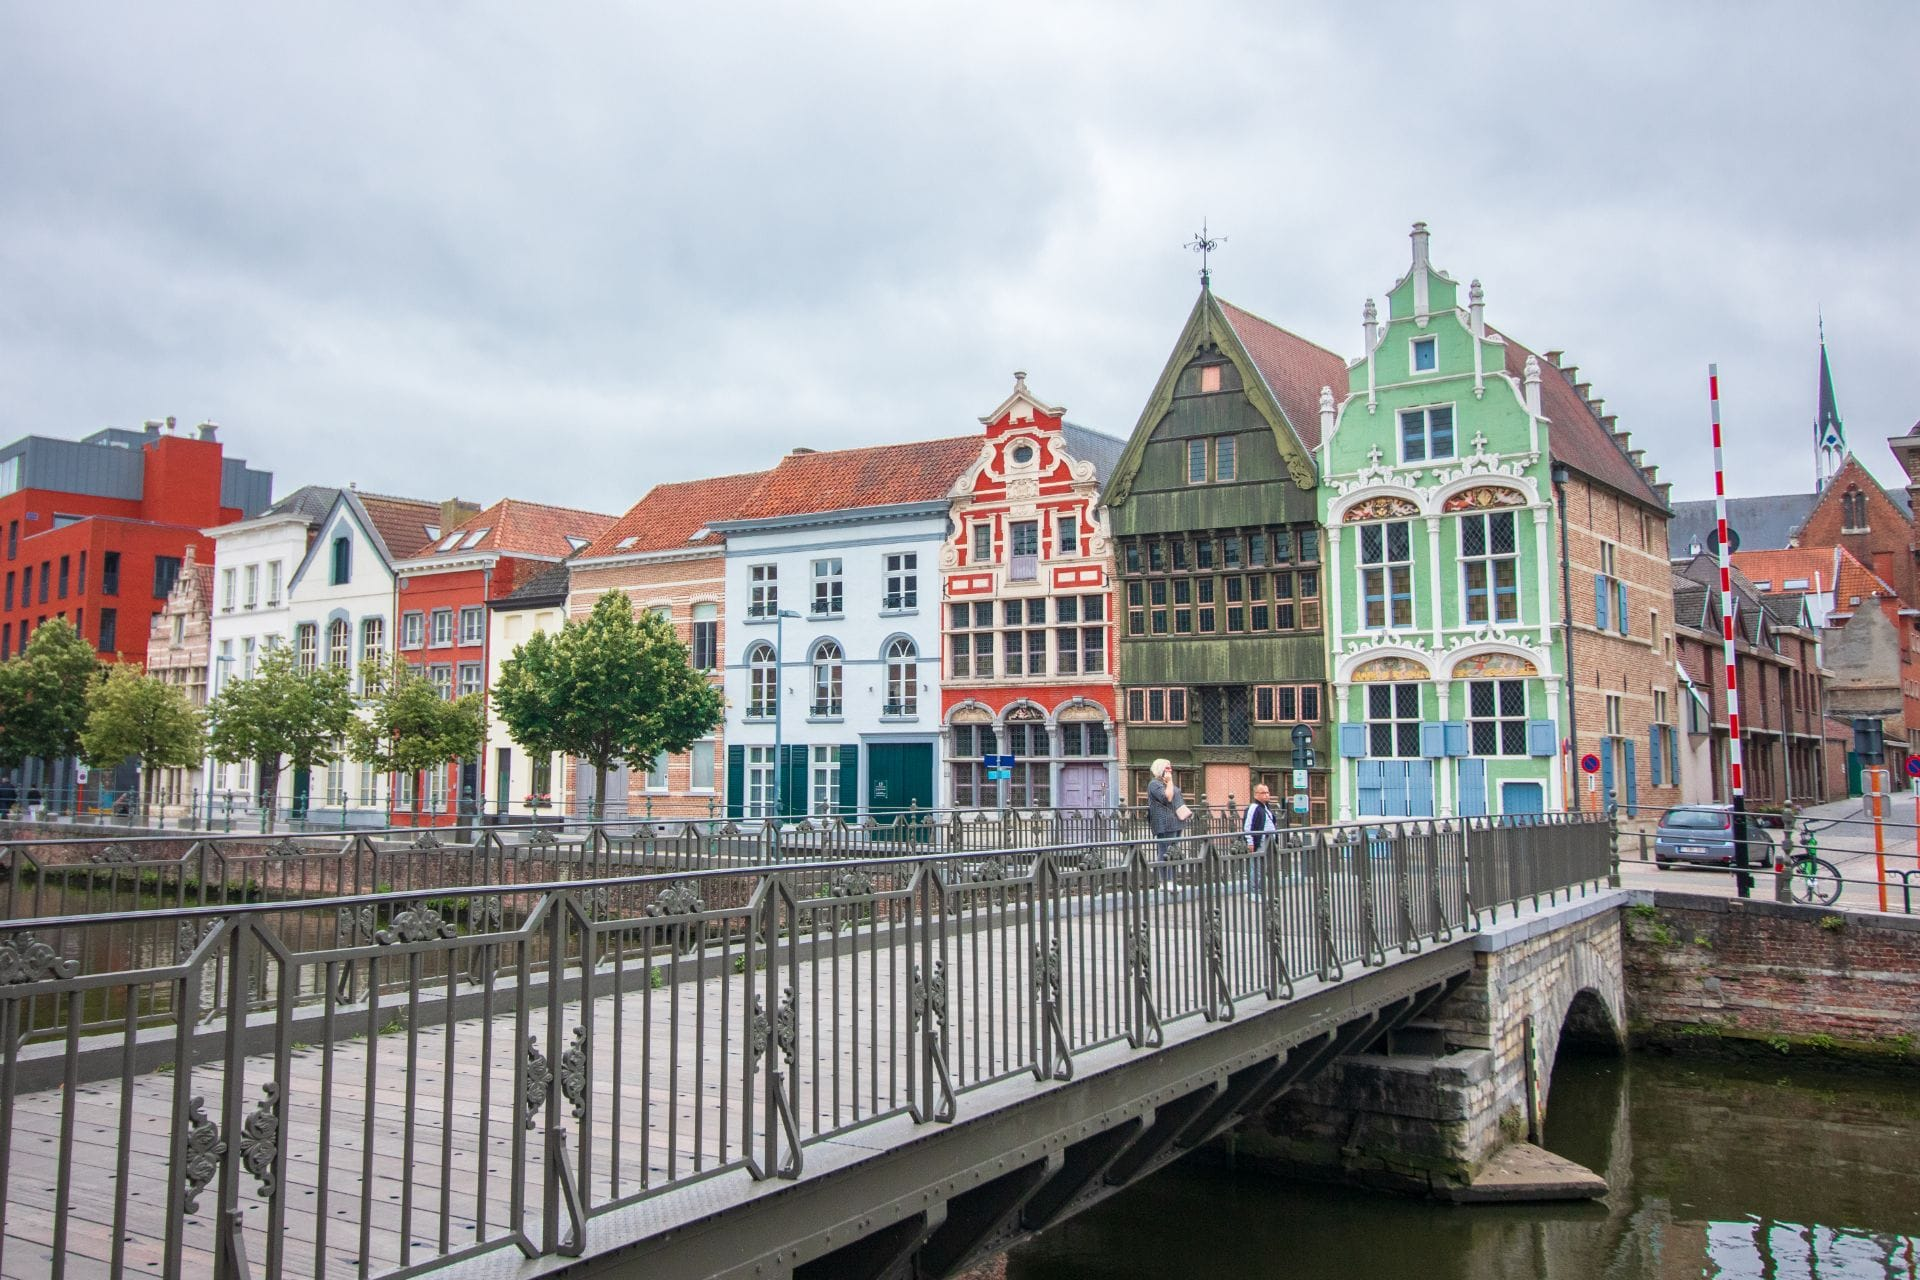 colourful-pretty-buildings-by-river-and-bridge-in-european-city-mechelen-instagram-photography-spots-haverwerf-reasons-to-visit-mechelen-belgium